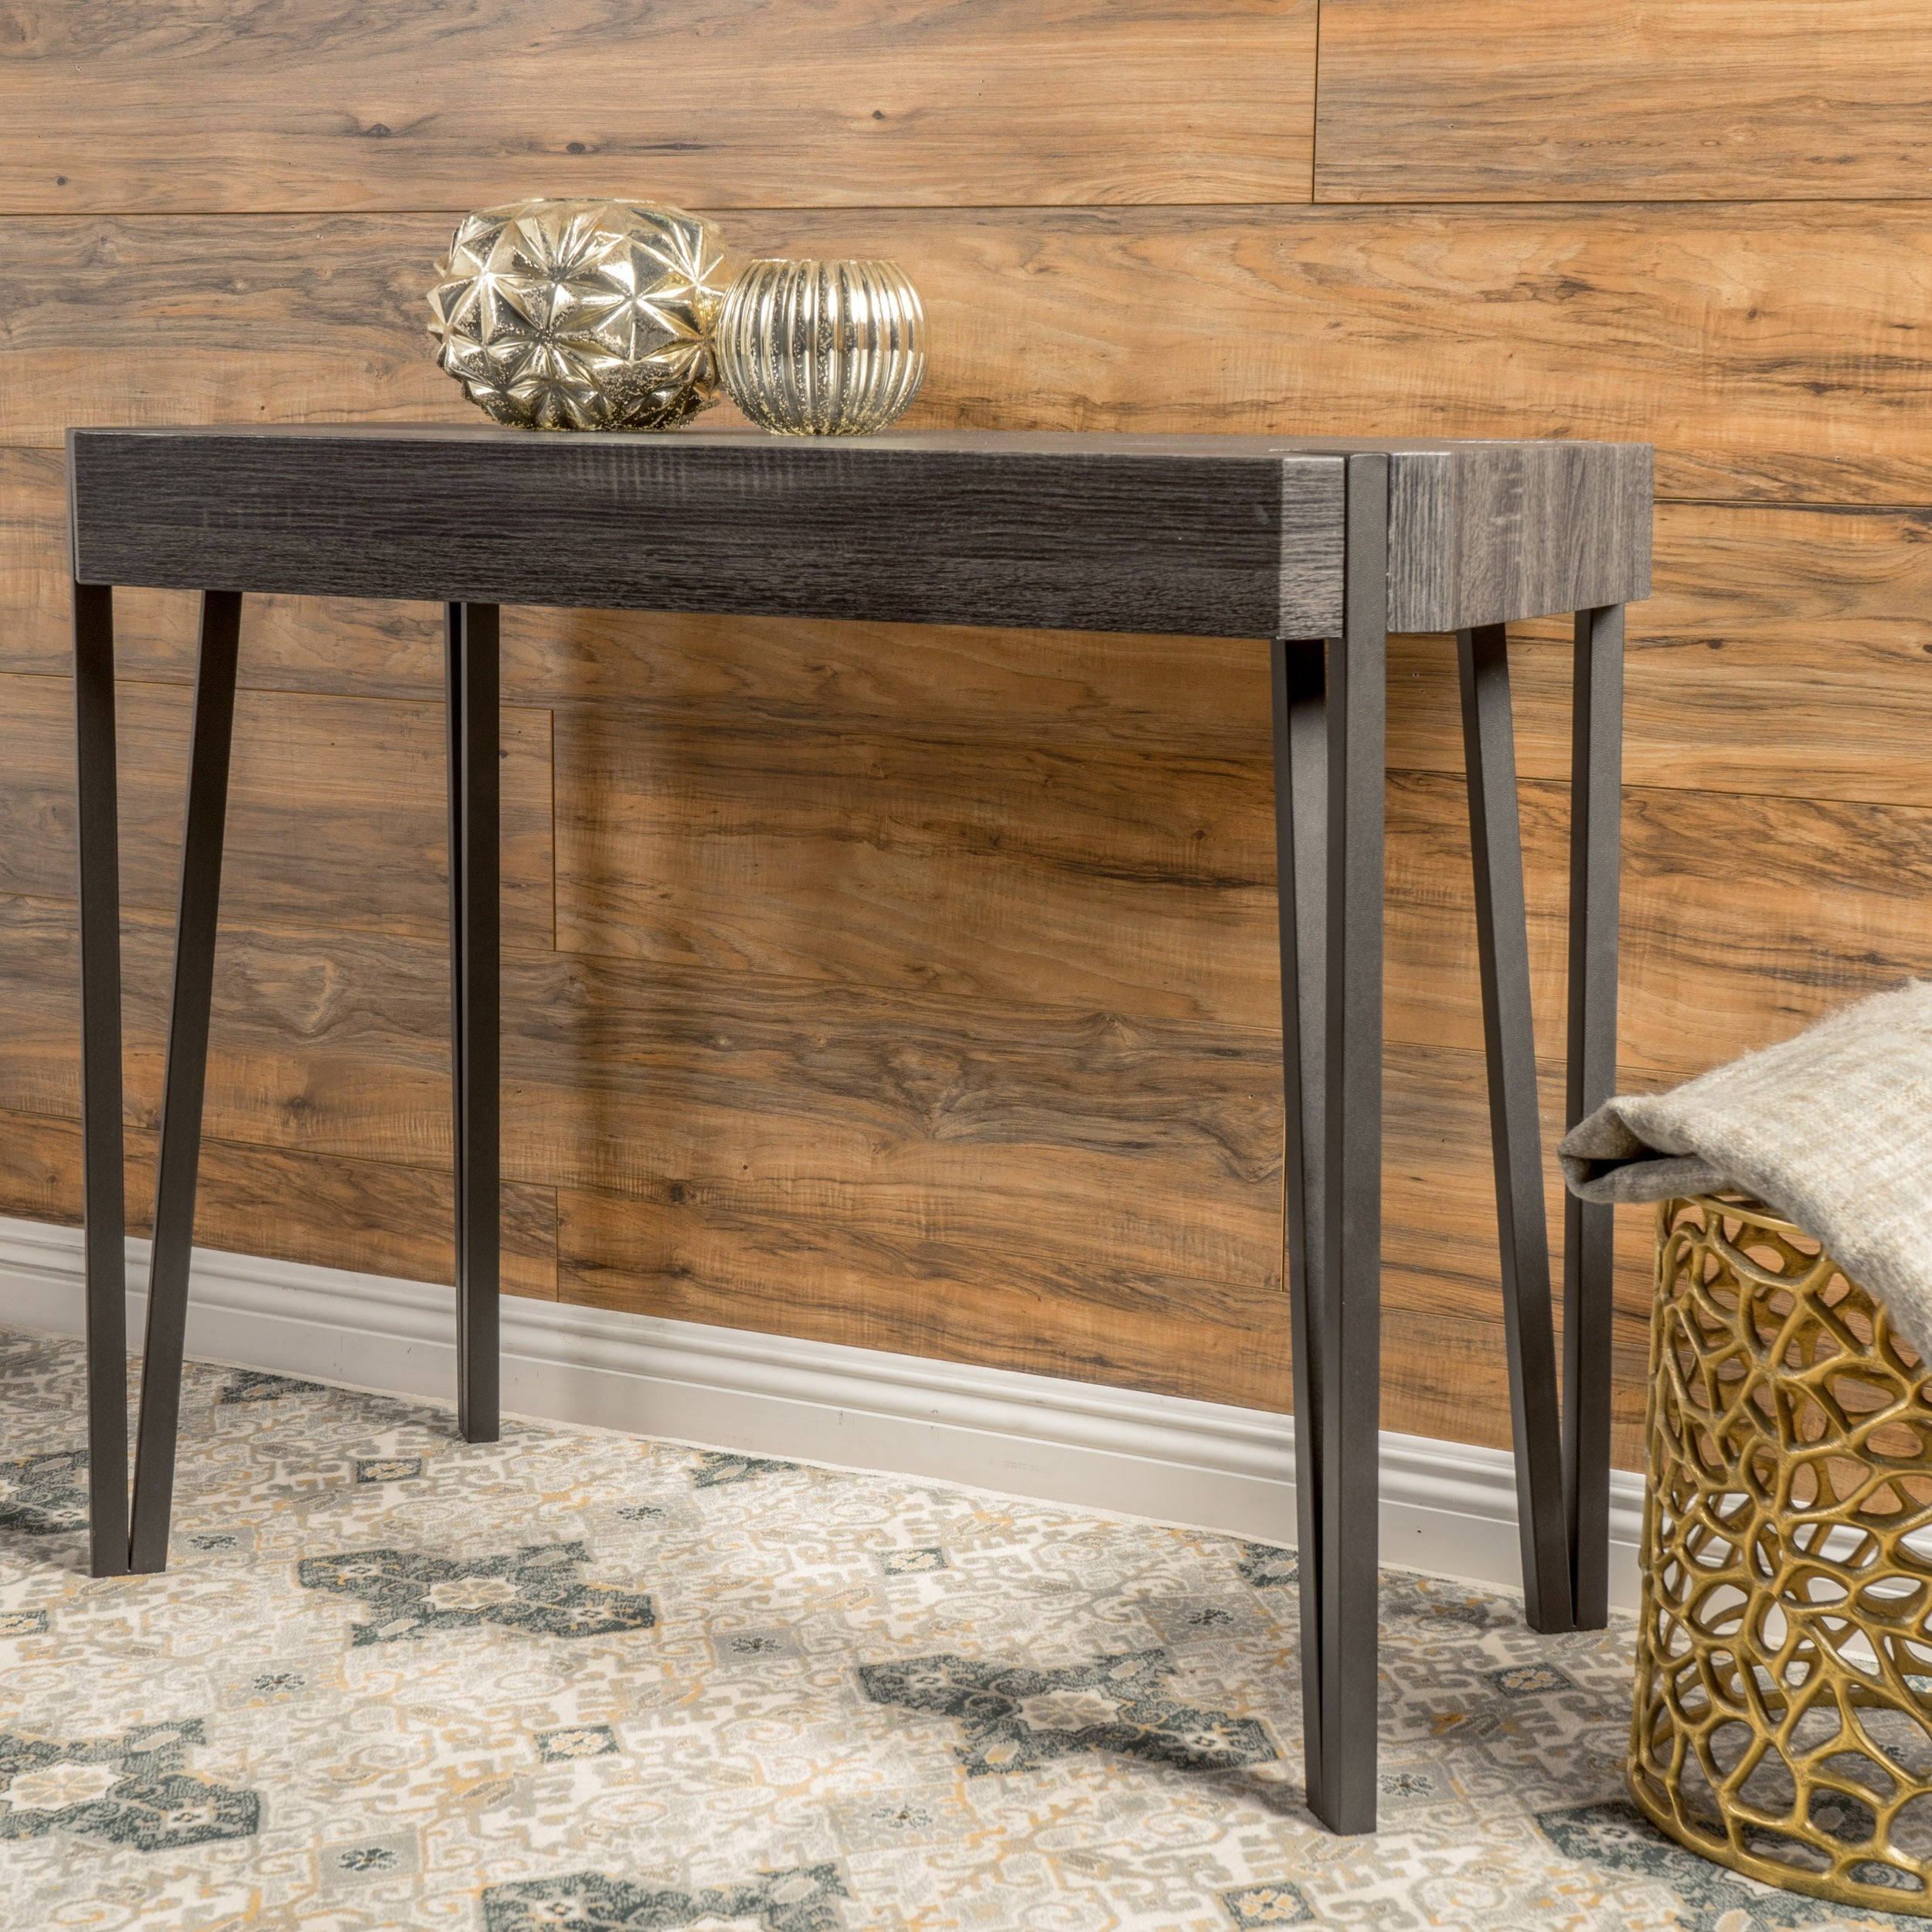 Colville Rustic Wood Console Table By Christopher Knight Home On Free Shipping Today 11993057